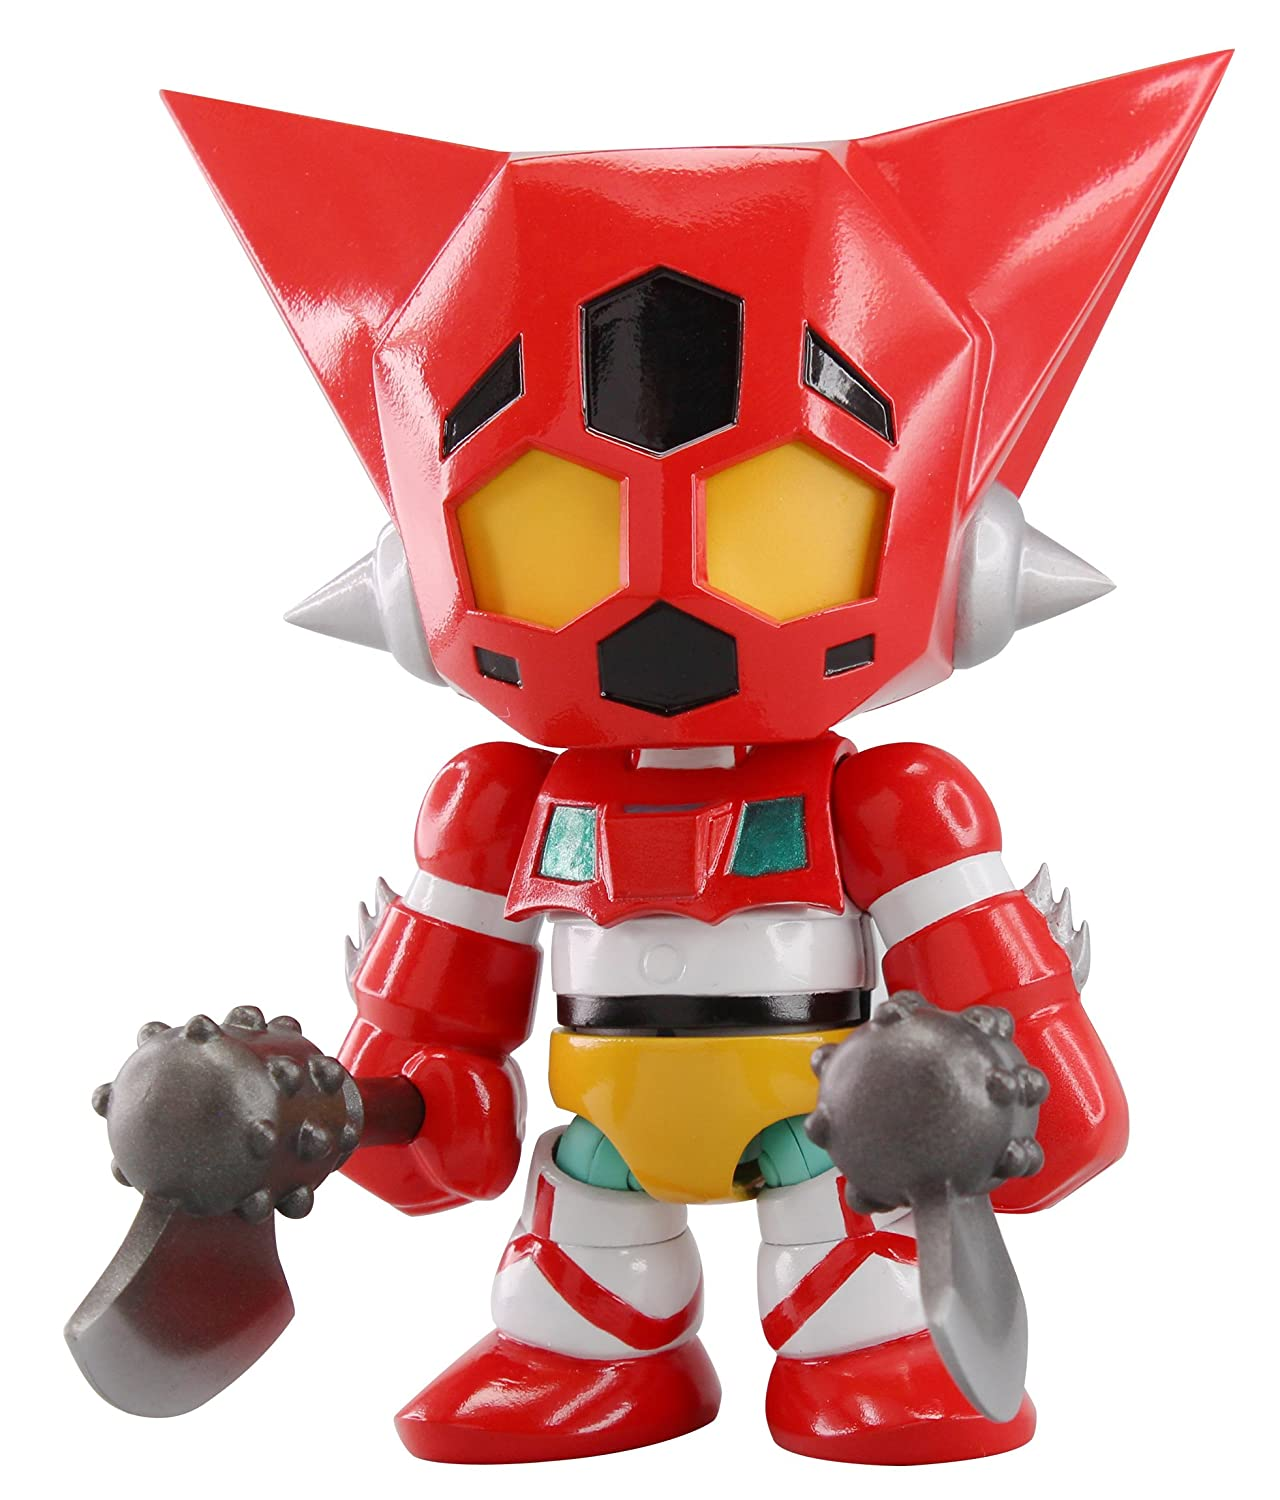 Q-suit getter ryoma x getter 1 height approx. 100 mm ABS made of pre-painted PVC figure